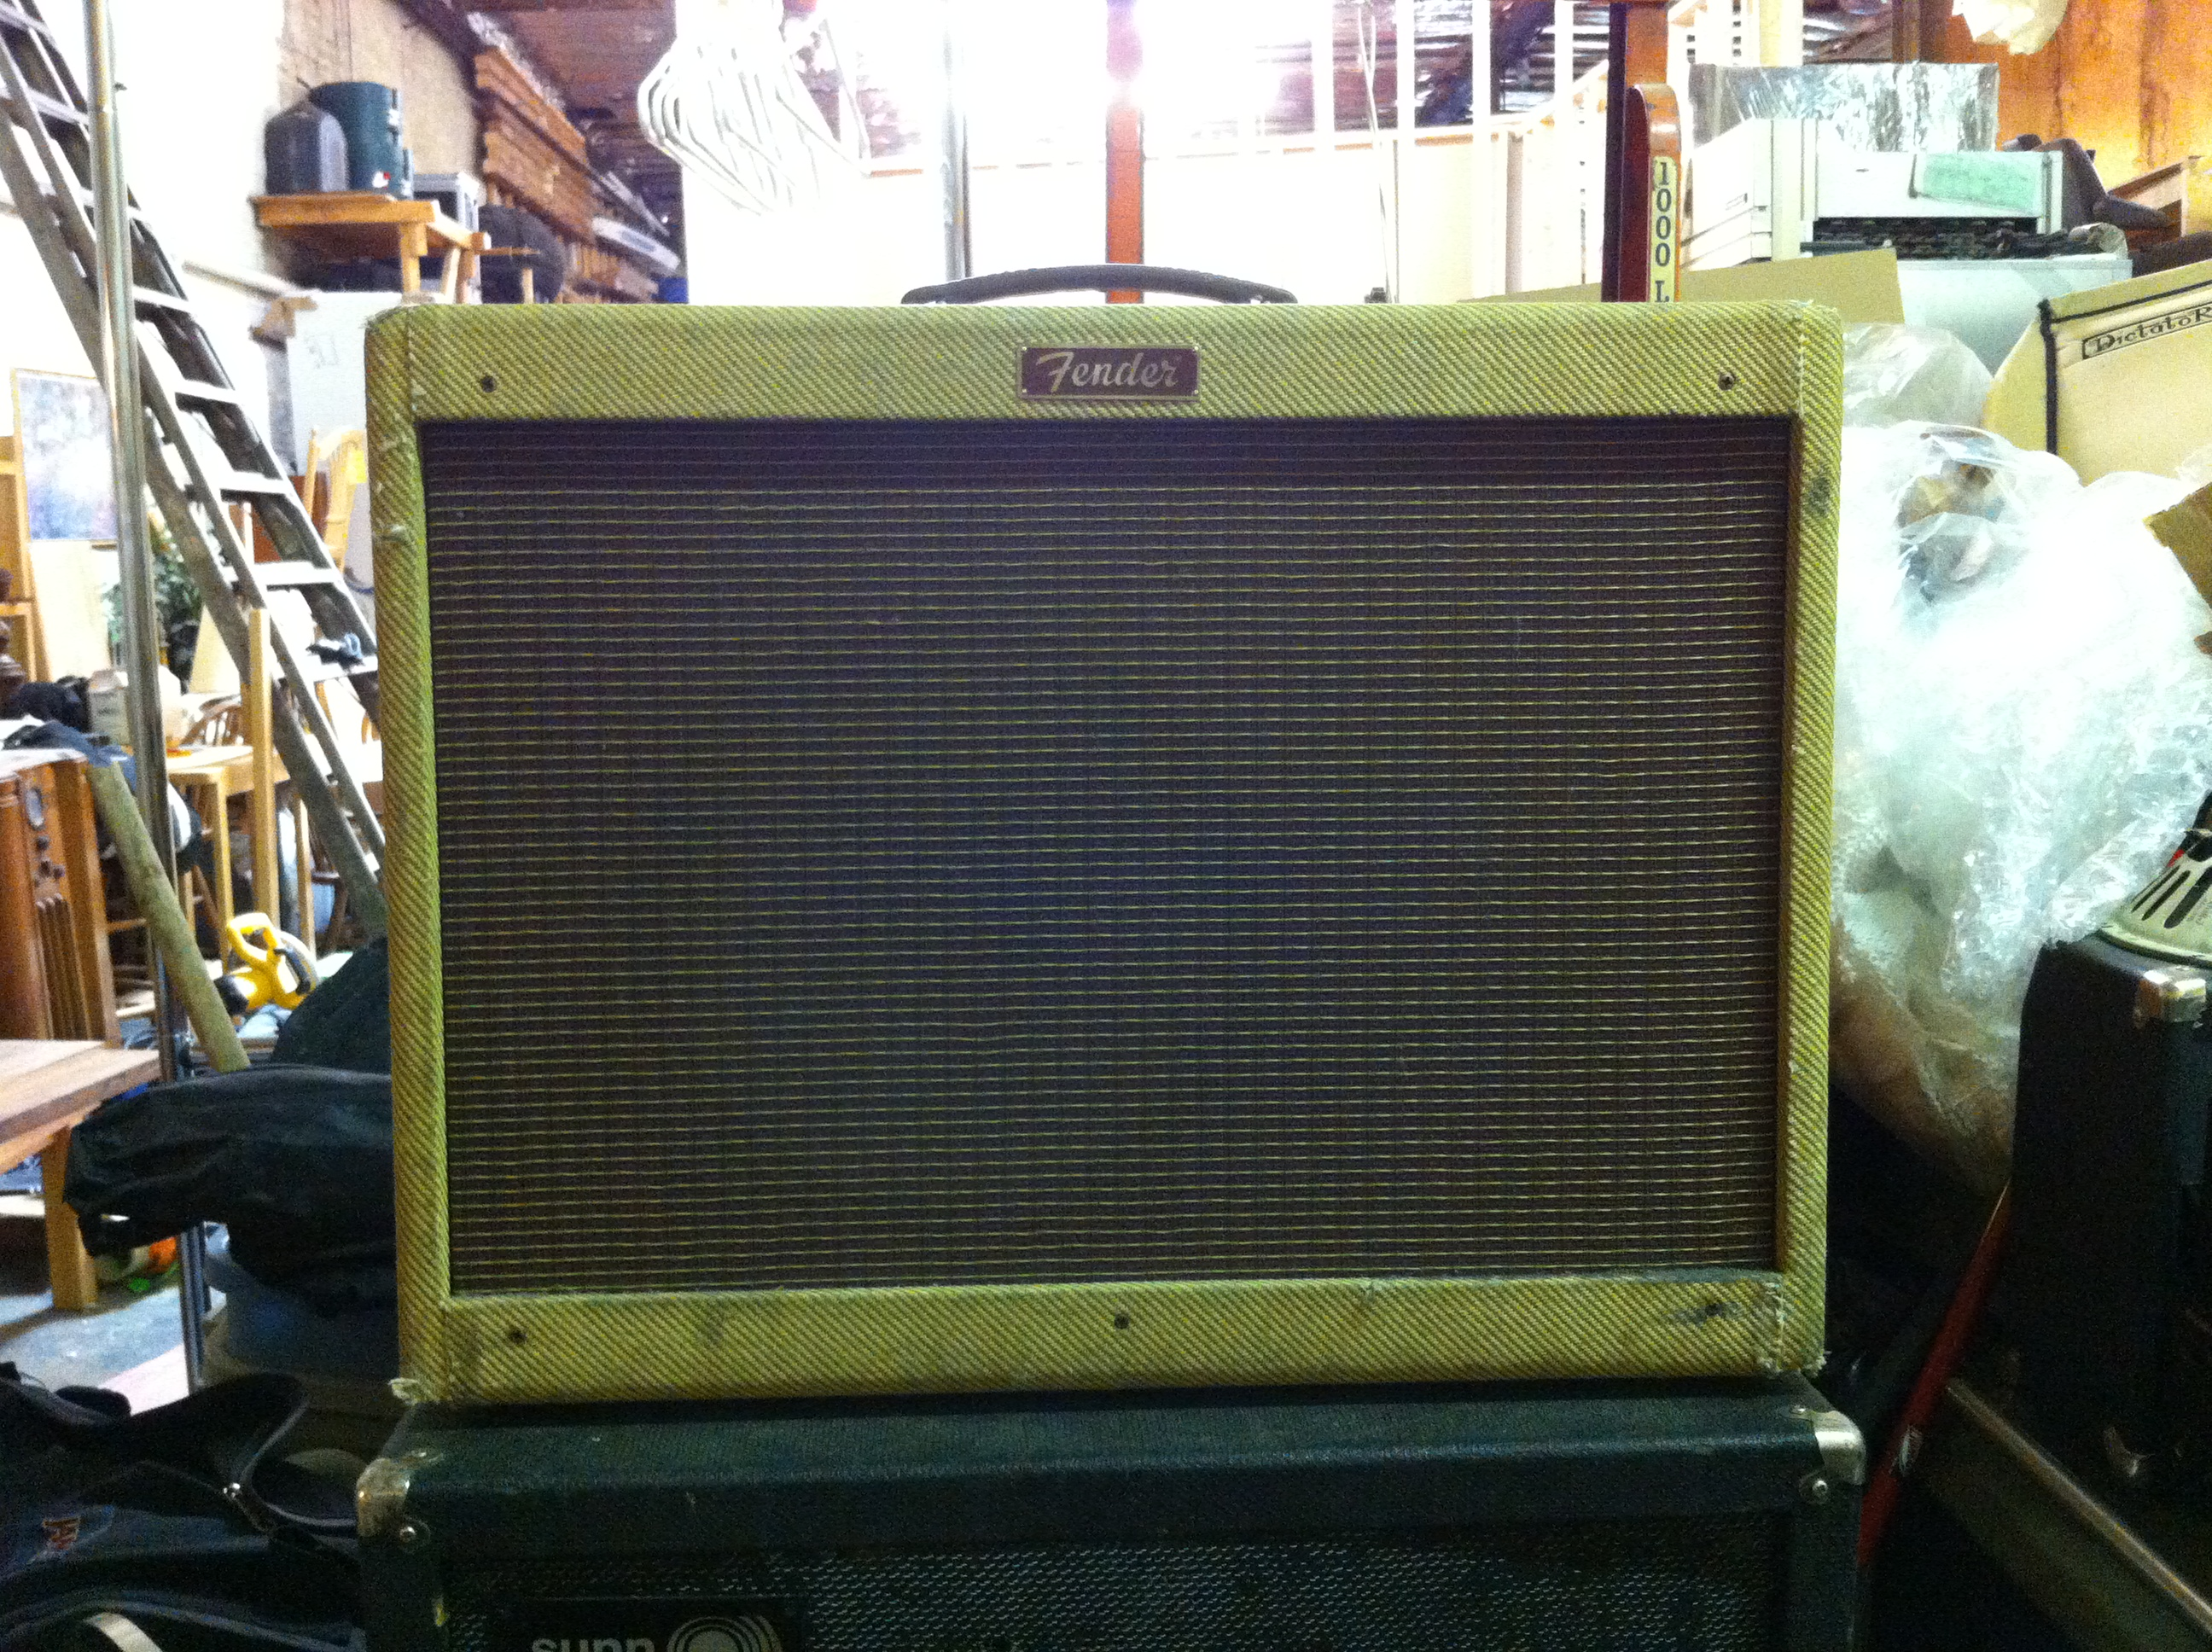 Fender Blues Deluxe reissue from mid 90s. My chassis shot was all blurry  but it's